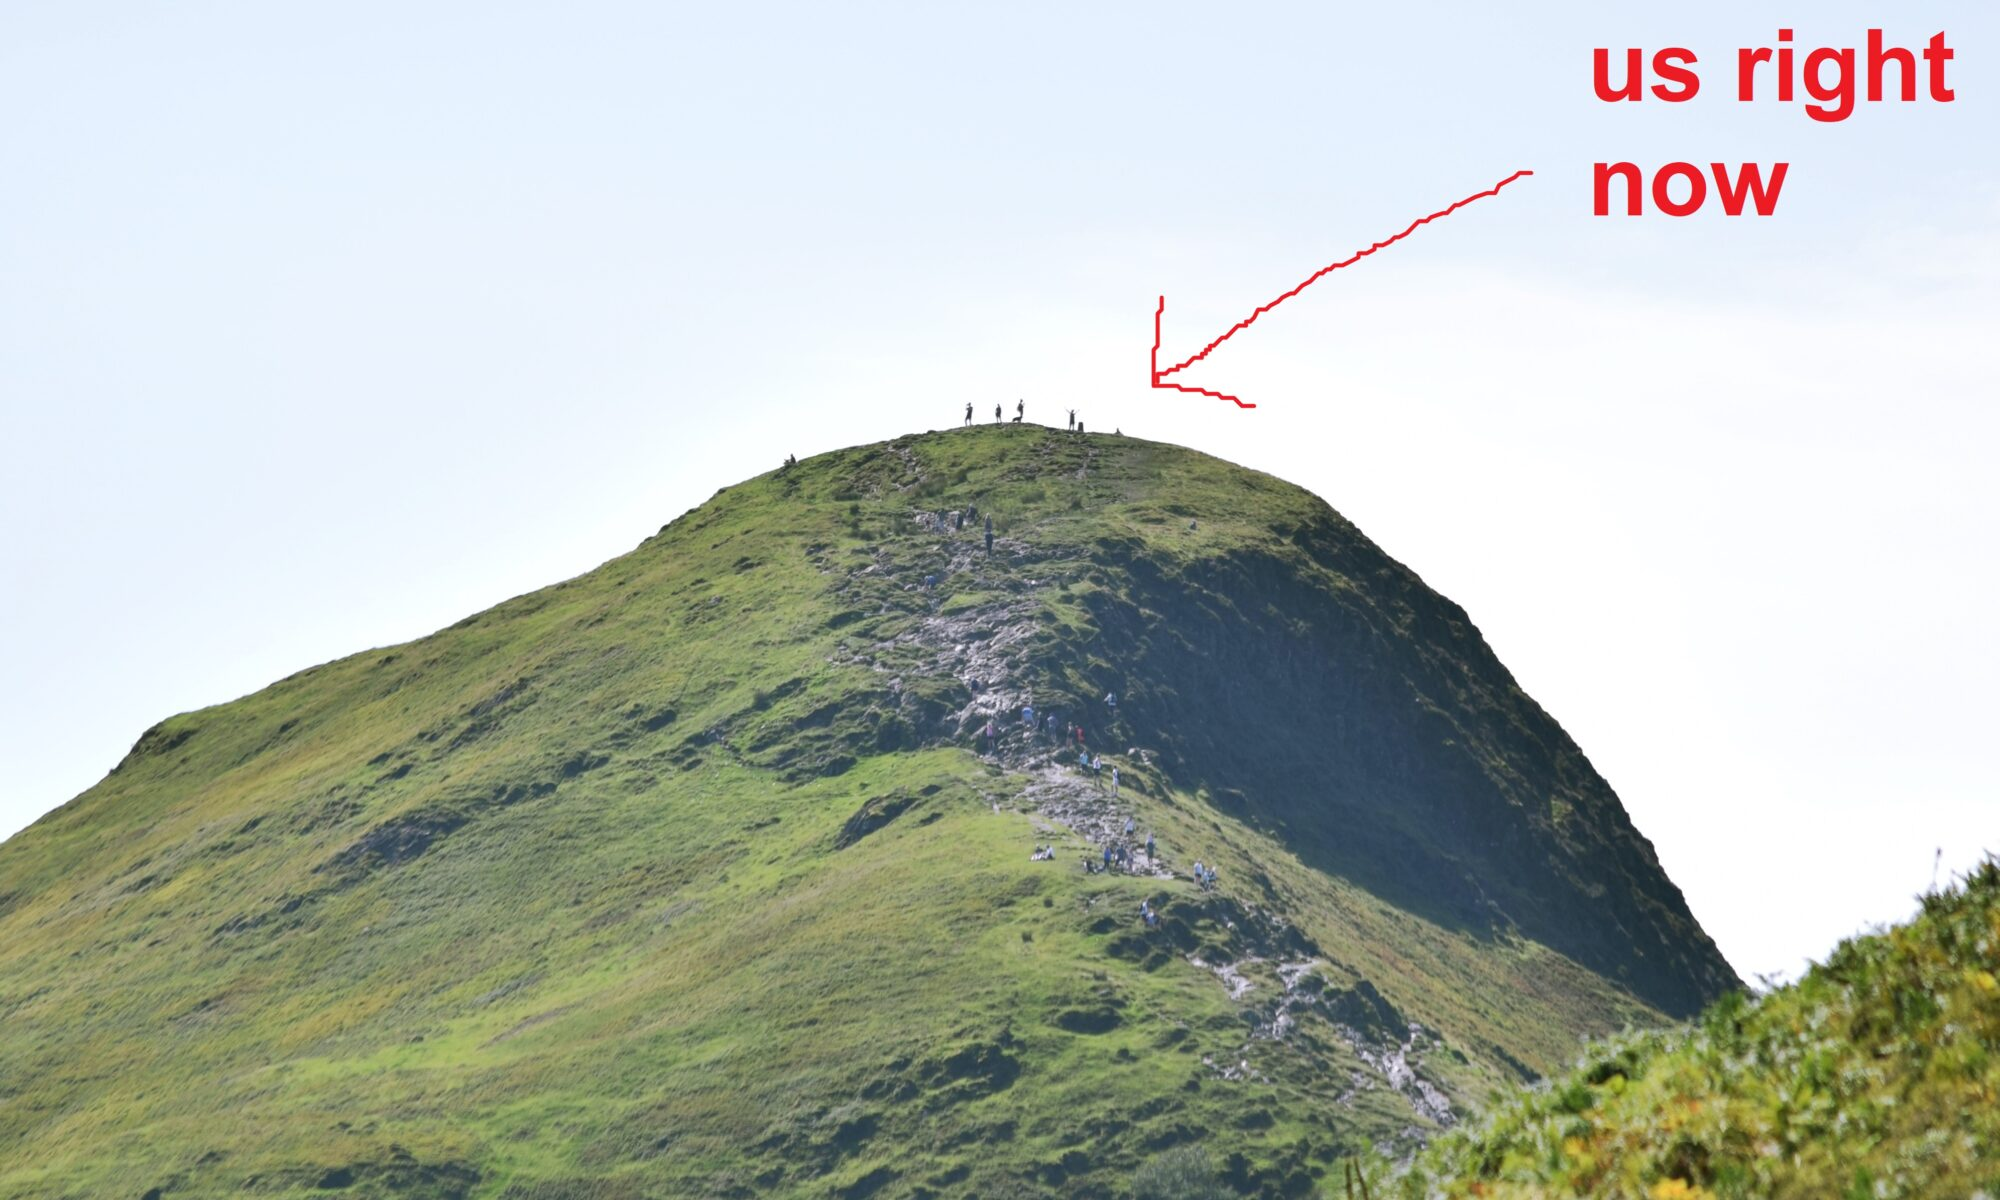 """a group of people at the top of a hill, with an arrow pointing to them saying """"us right now"""""""